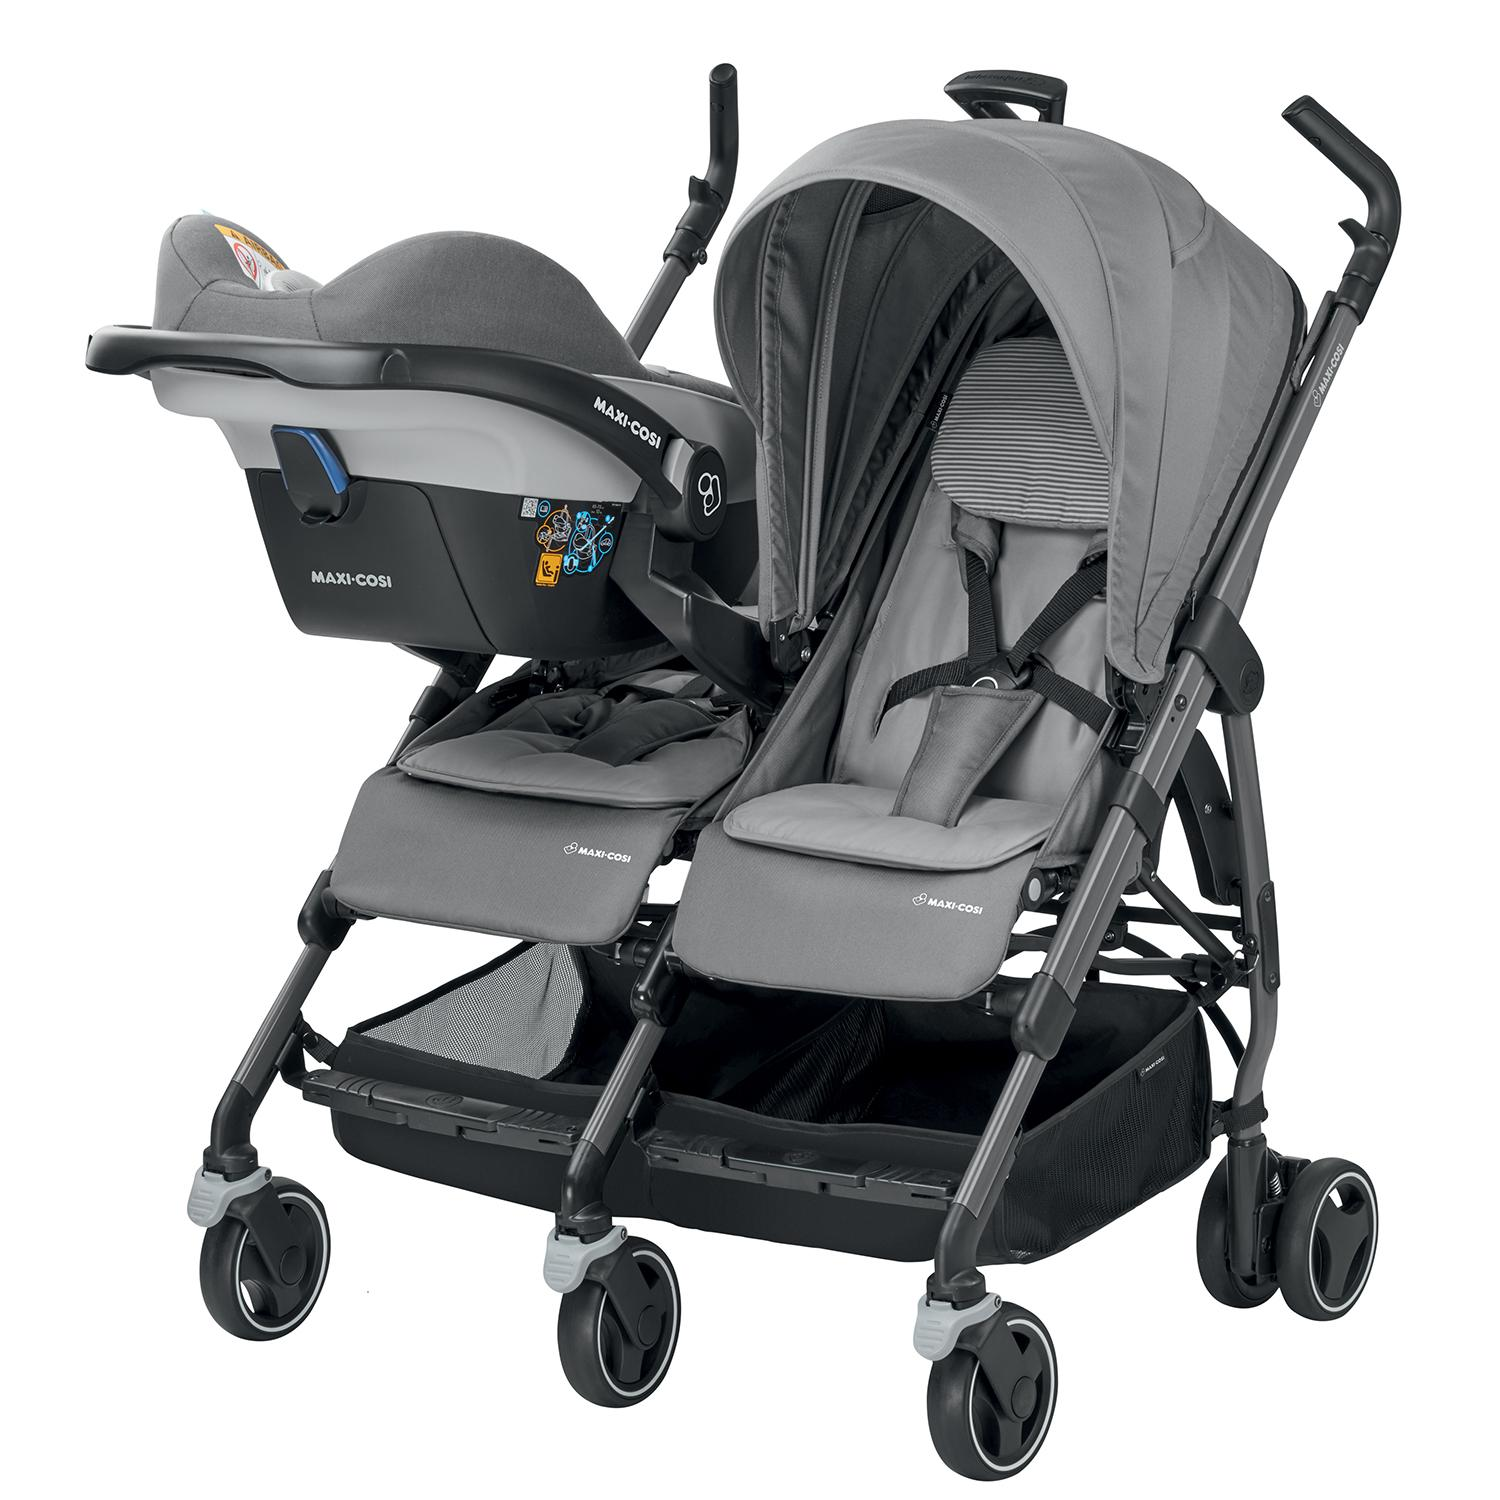 maxi cosi dana stroller for two concrete grey. Black Bedroom Furniture Sets. Home Design Ideas